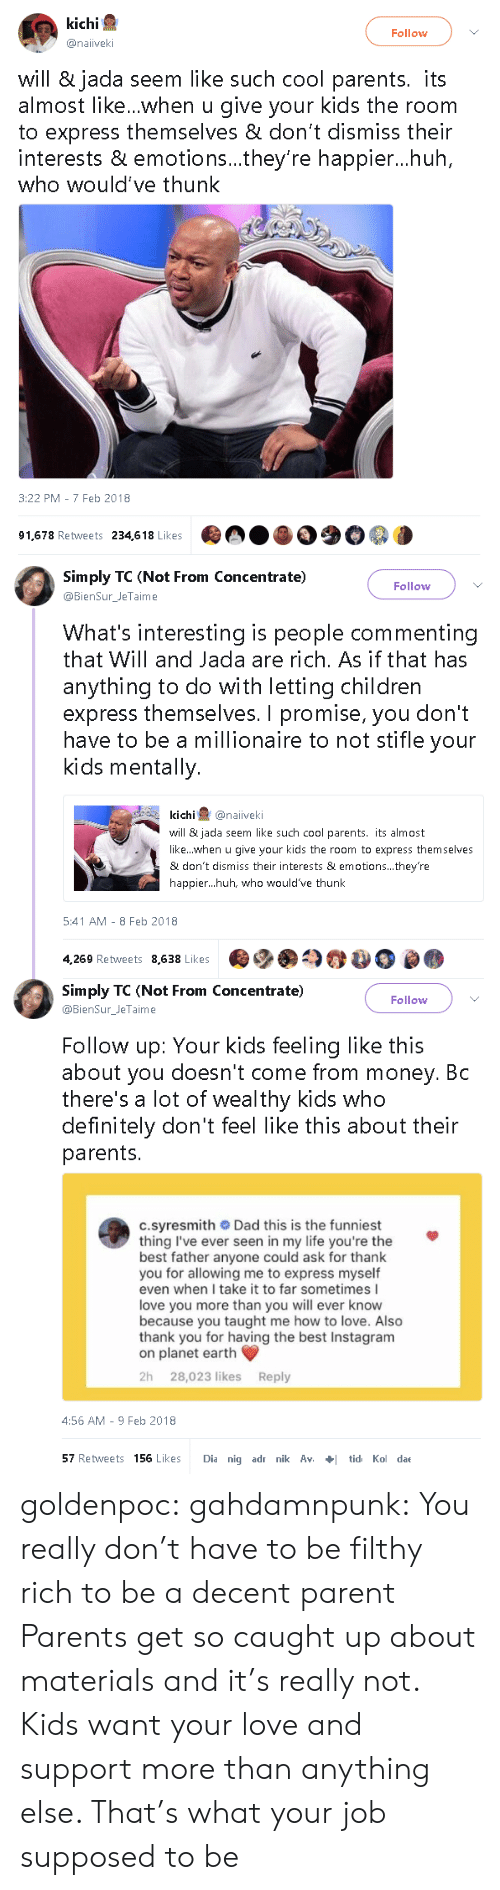 i love you more than: kichi  Follow  @naiiveki  will & jada seem like such cool parents. its  almost like...when u give your kids the room  to express themselves & don't dismiss their  interests & emotions...they're happier...huh  who would've thunk  3:22 PM - 7 Feb 2018  91,678 Retweets 234,618 Likes   Simply TC (Not From Concentrate)  Follow  @BienSur_JeTaime  What's interesting is people commenting  that Will and Jada are rich. As if that has  anything to do with letting children  express themselves. I promise, you don't  have to be a millionaire to not stifle your  kids mentally.  kichi@naiveki  will & jada seem like such cool parents. its almost  like...when u give your kids the room to express themselves  & don't dismiss their interests & emotions... they're  happier...huh, who would've thunk  5:41 AM - 8 Feb 2018  4,269 Retweets 8,638 Likes   Simply TC (Not From Concentrate)  @BienSurJeTaime  Follow  Follow up: Your kids feeling like this  about you doesn't come from money. Bc  there's a lot of wealthy kids who  definitely don't feel like this about their  parents.  c.syresmith Dad this is the funniest  thing I've ever seen in my life you're the  best father anyone could ask for thank  you for allowing me to express myself  even when I take it to far sometimes I  love you more than you will ever know  because you taught me how to love. Also  thank you for having the best Instagram  on planet earth  2h 28,023 likes Reply  4:56 AM-9 Feb 2018  57 Retweets 156 Likes Dia nig adr nik Avtid Ko dae goldenpoc: gahdamnpunk: You really don't have to be filthy rich to be a decent parent   Parents get so caught up about materials and it's really not. Kids want your love and support more than anything else. That's what your job supposed to be